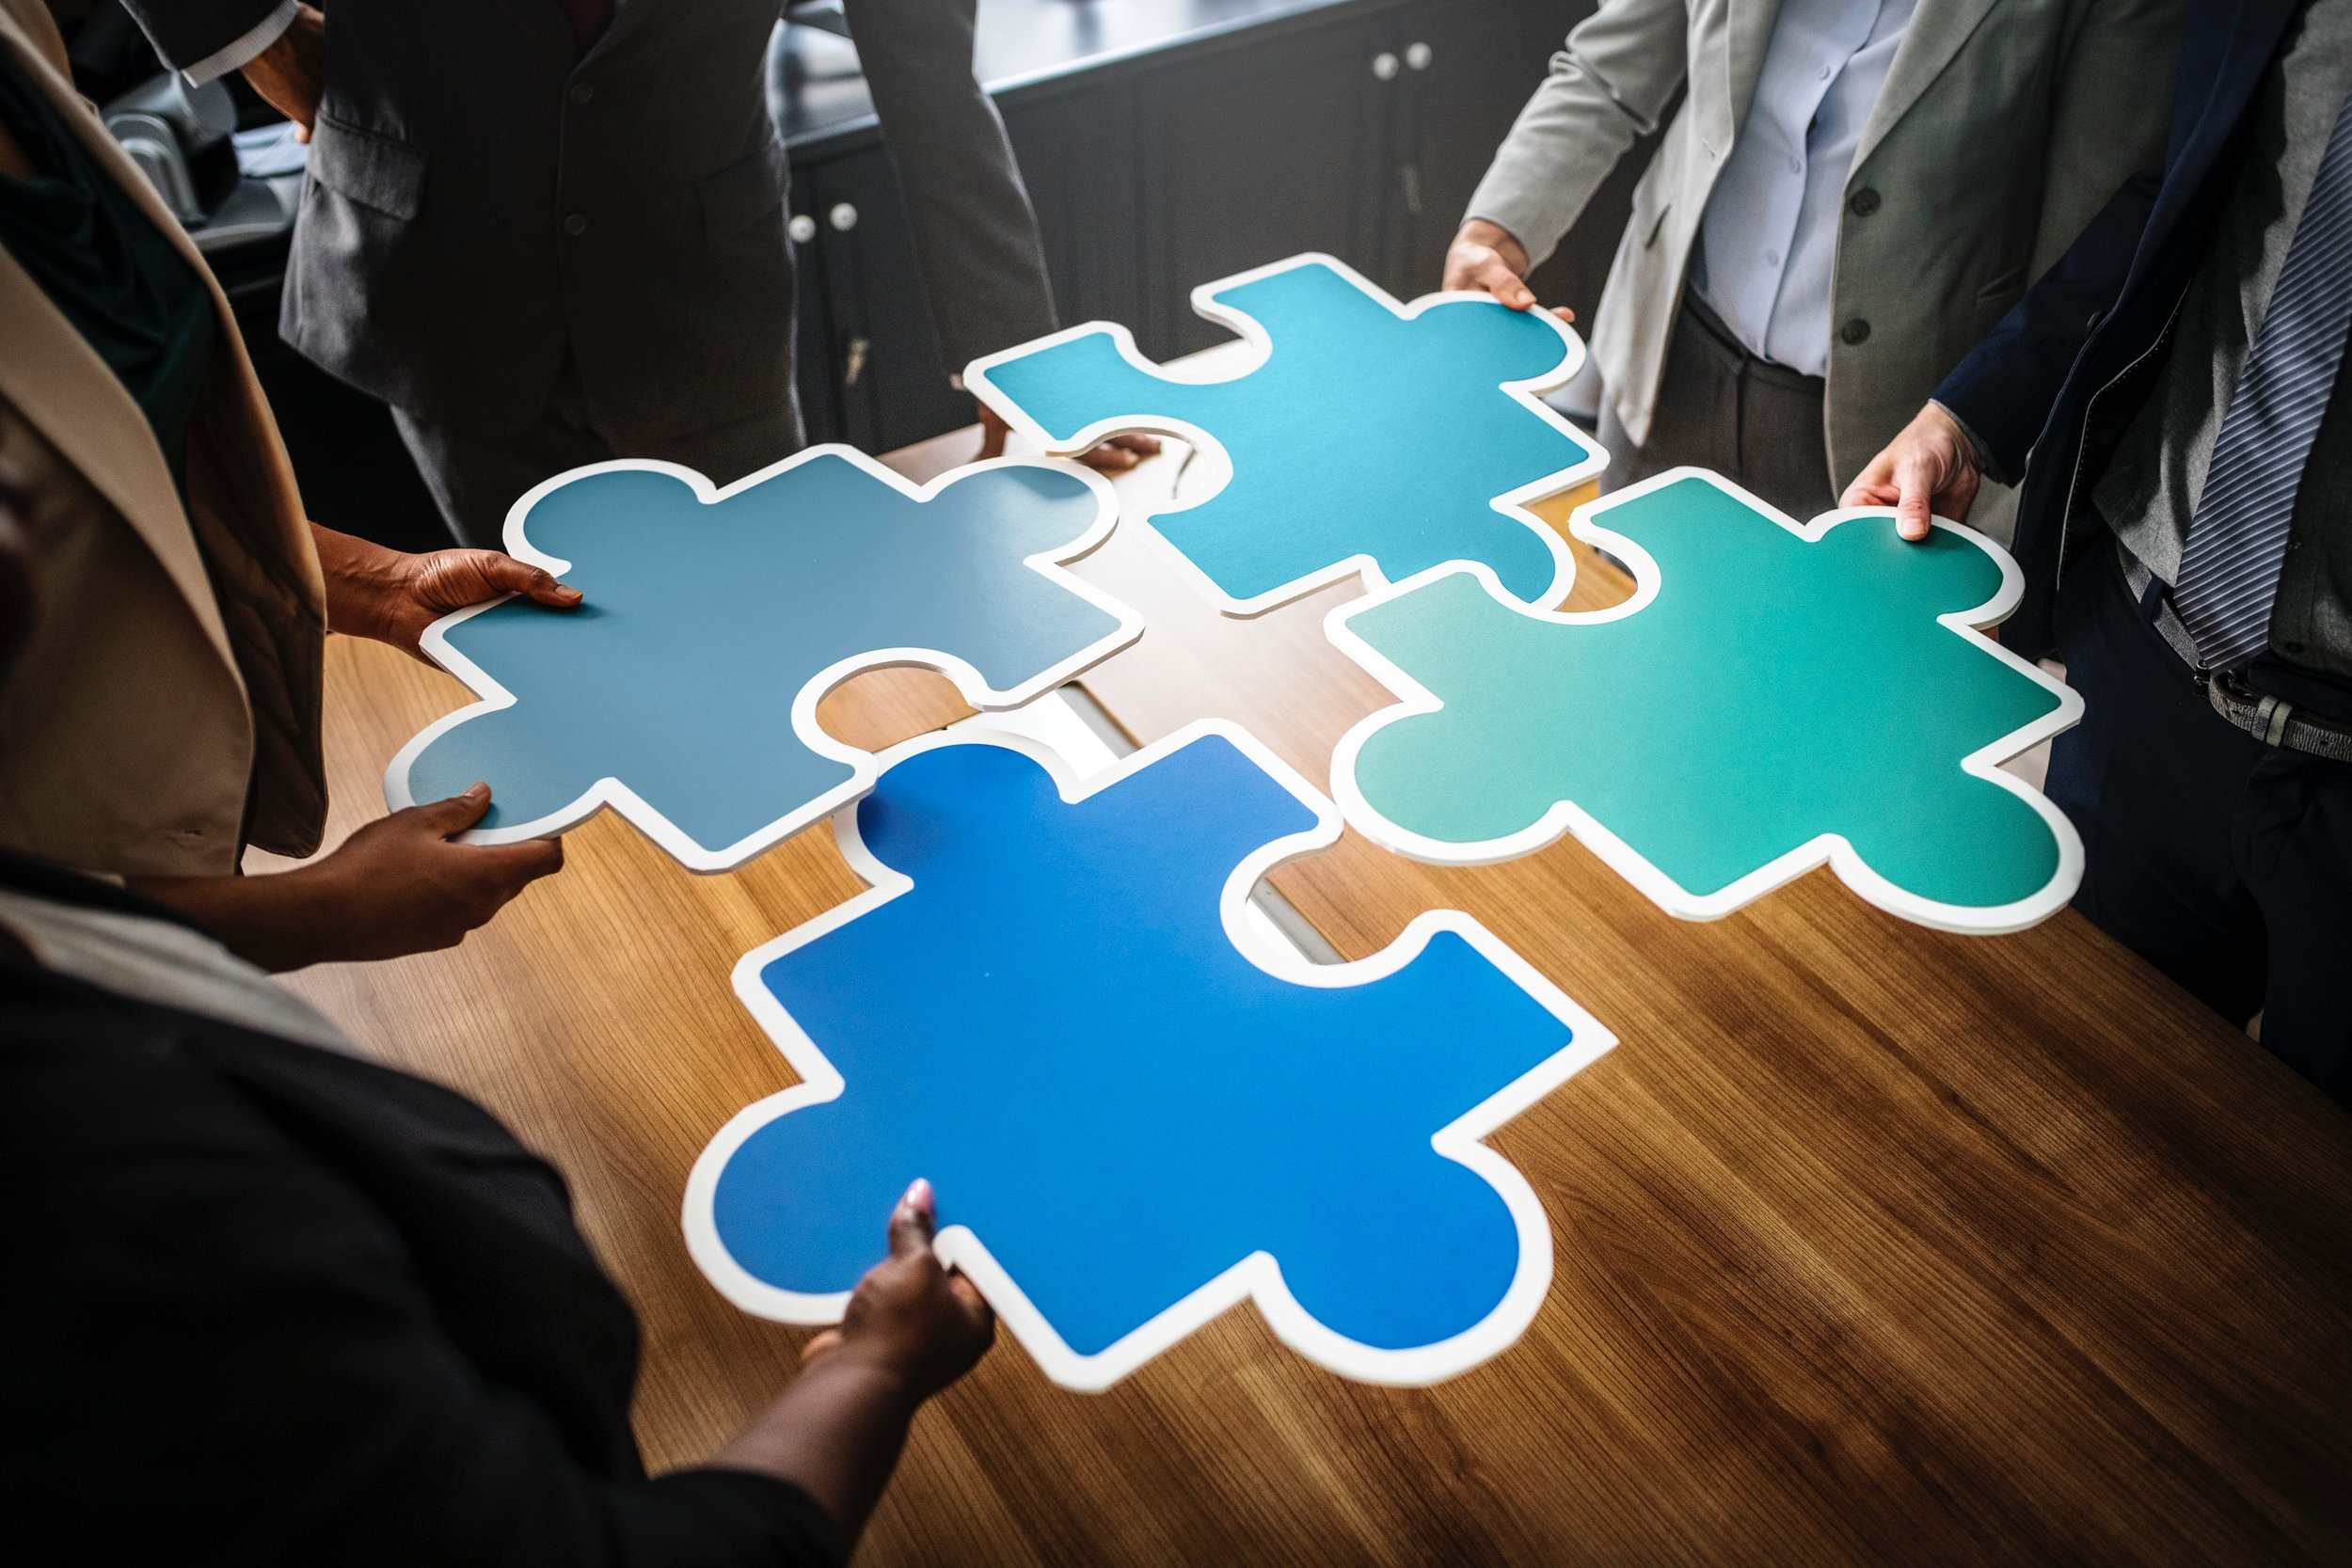 People in office setting holding up giant puzzle pieces that fit together